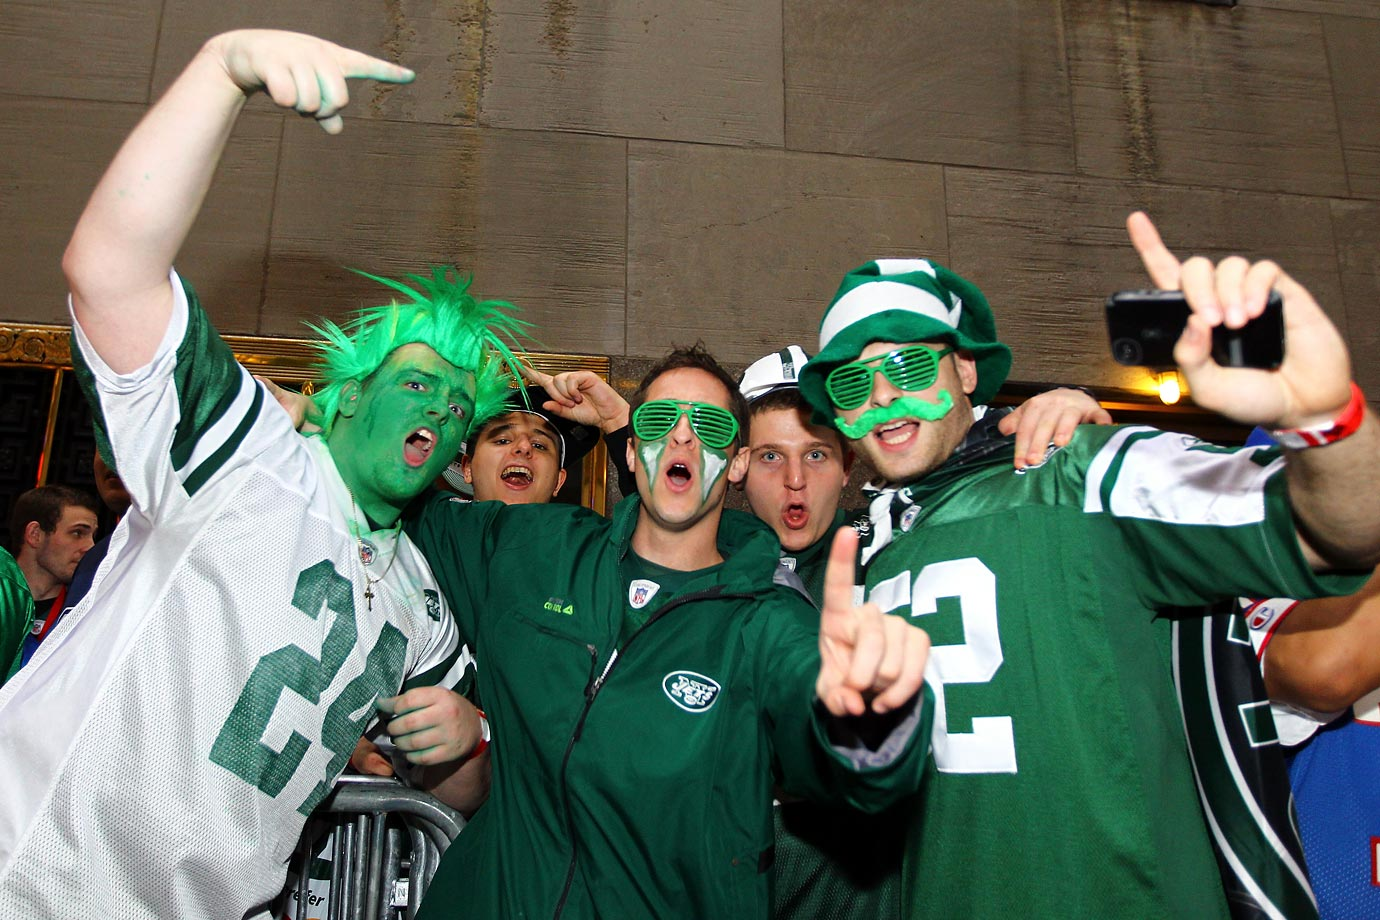 New York Jets fans in 2012.